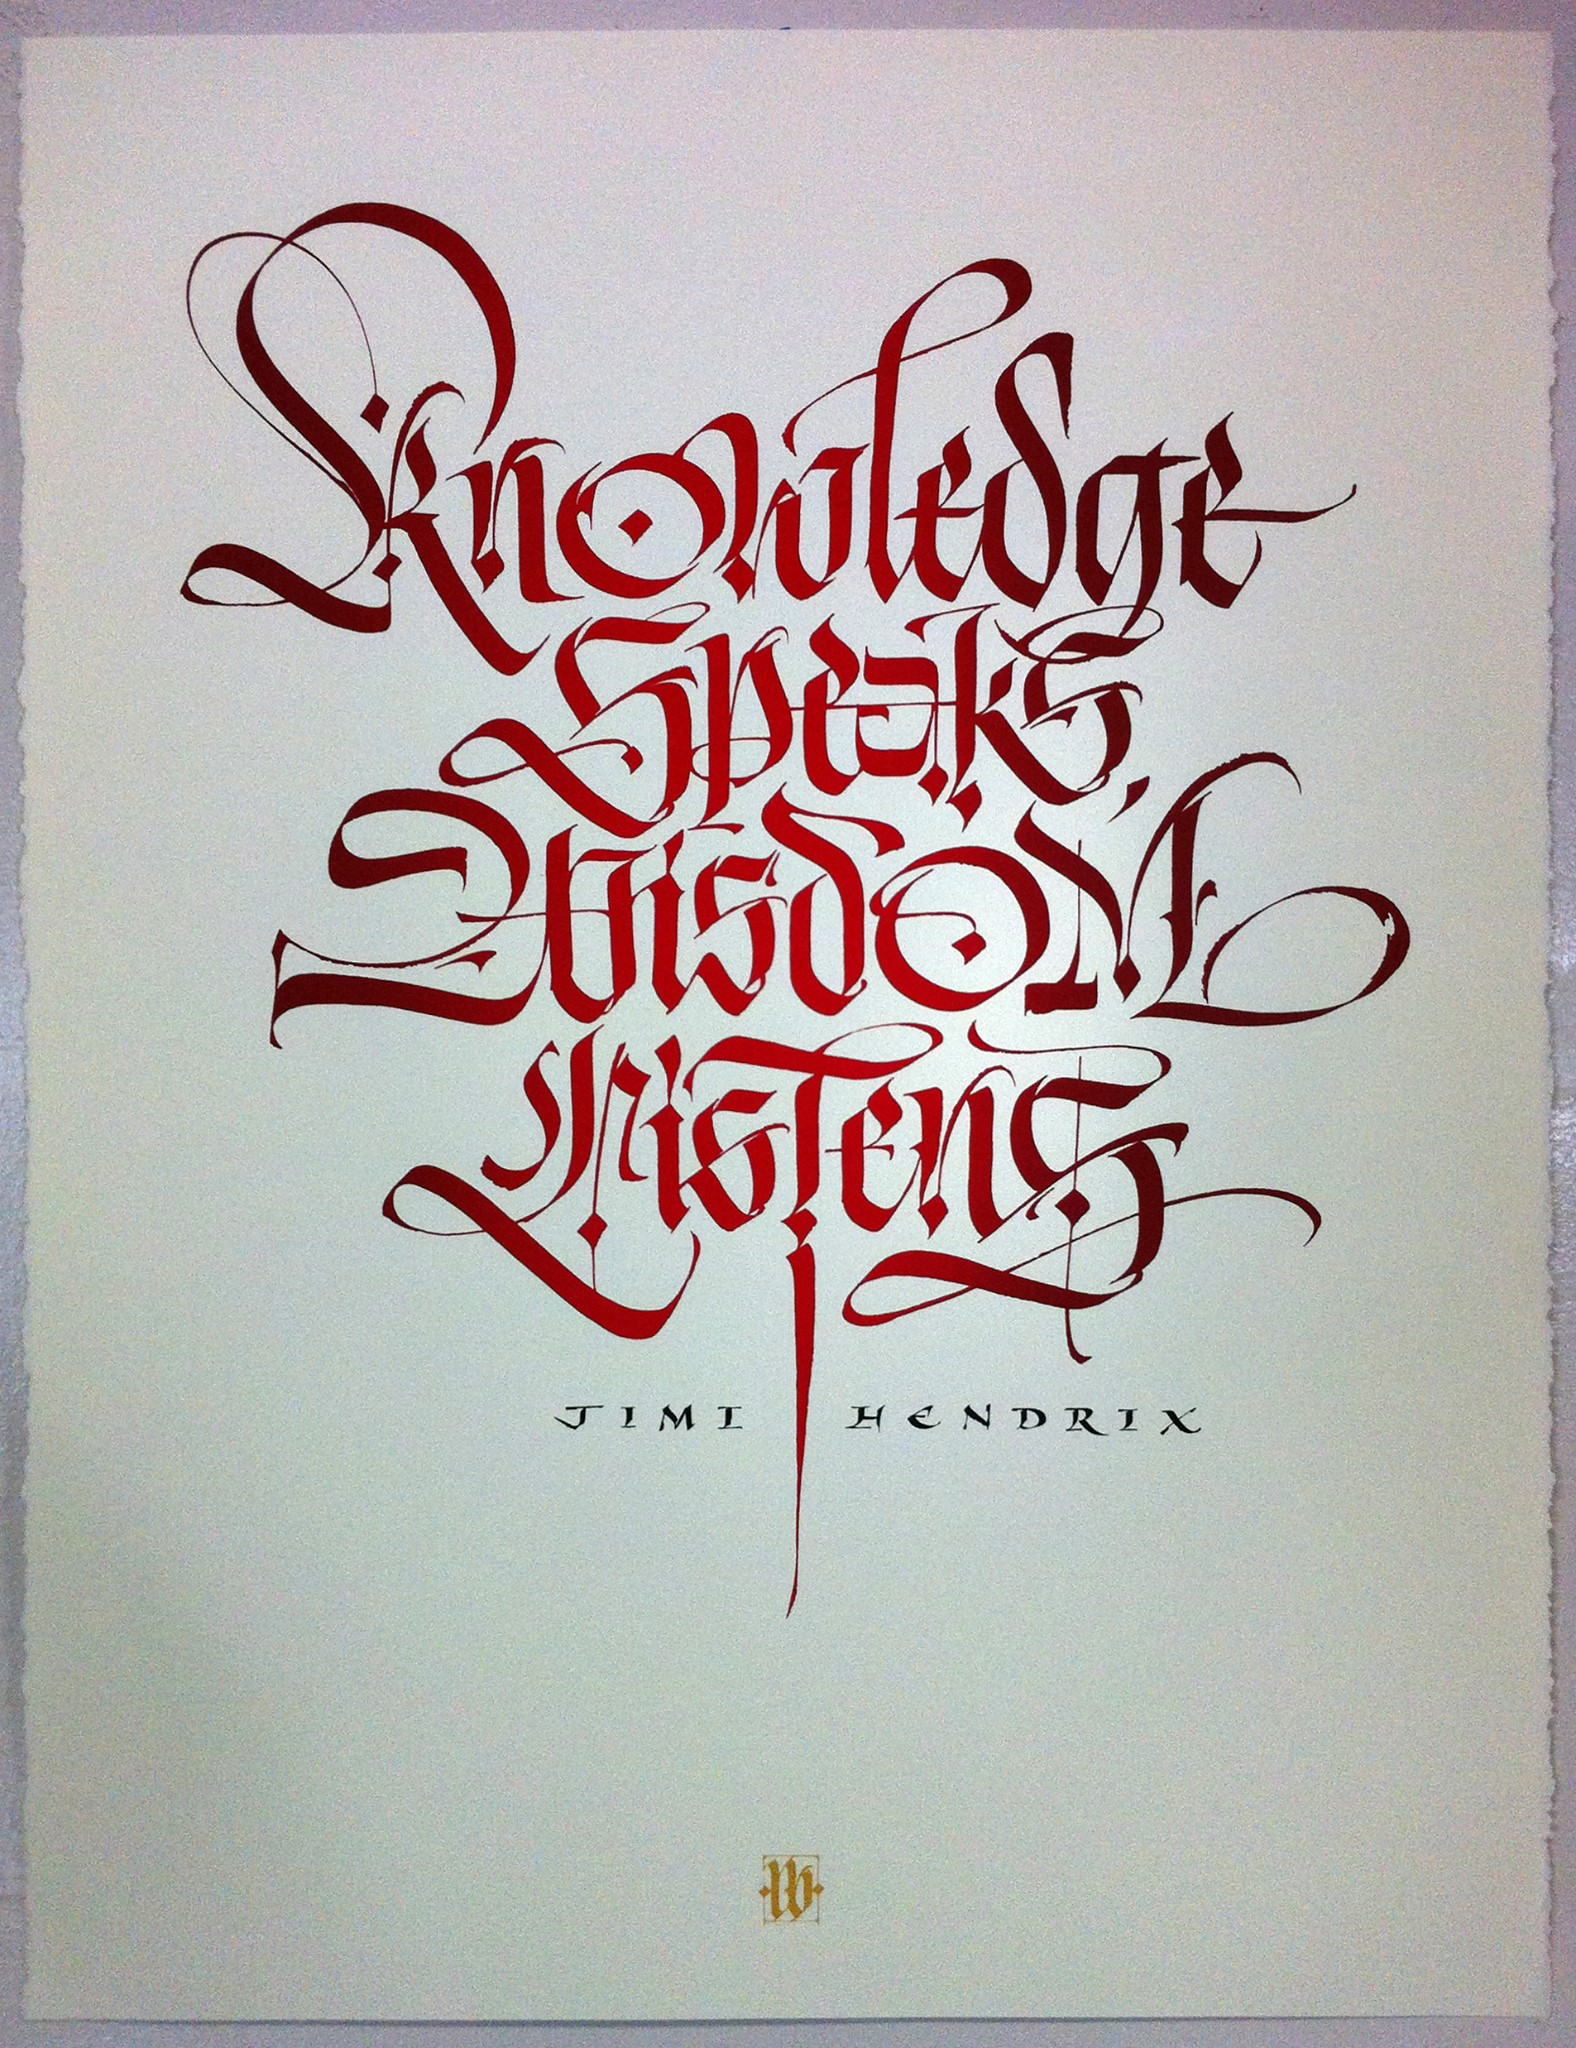 Luca barcellona bon expose museum of art and design Pinterest calligraphy